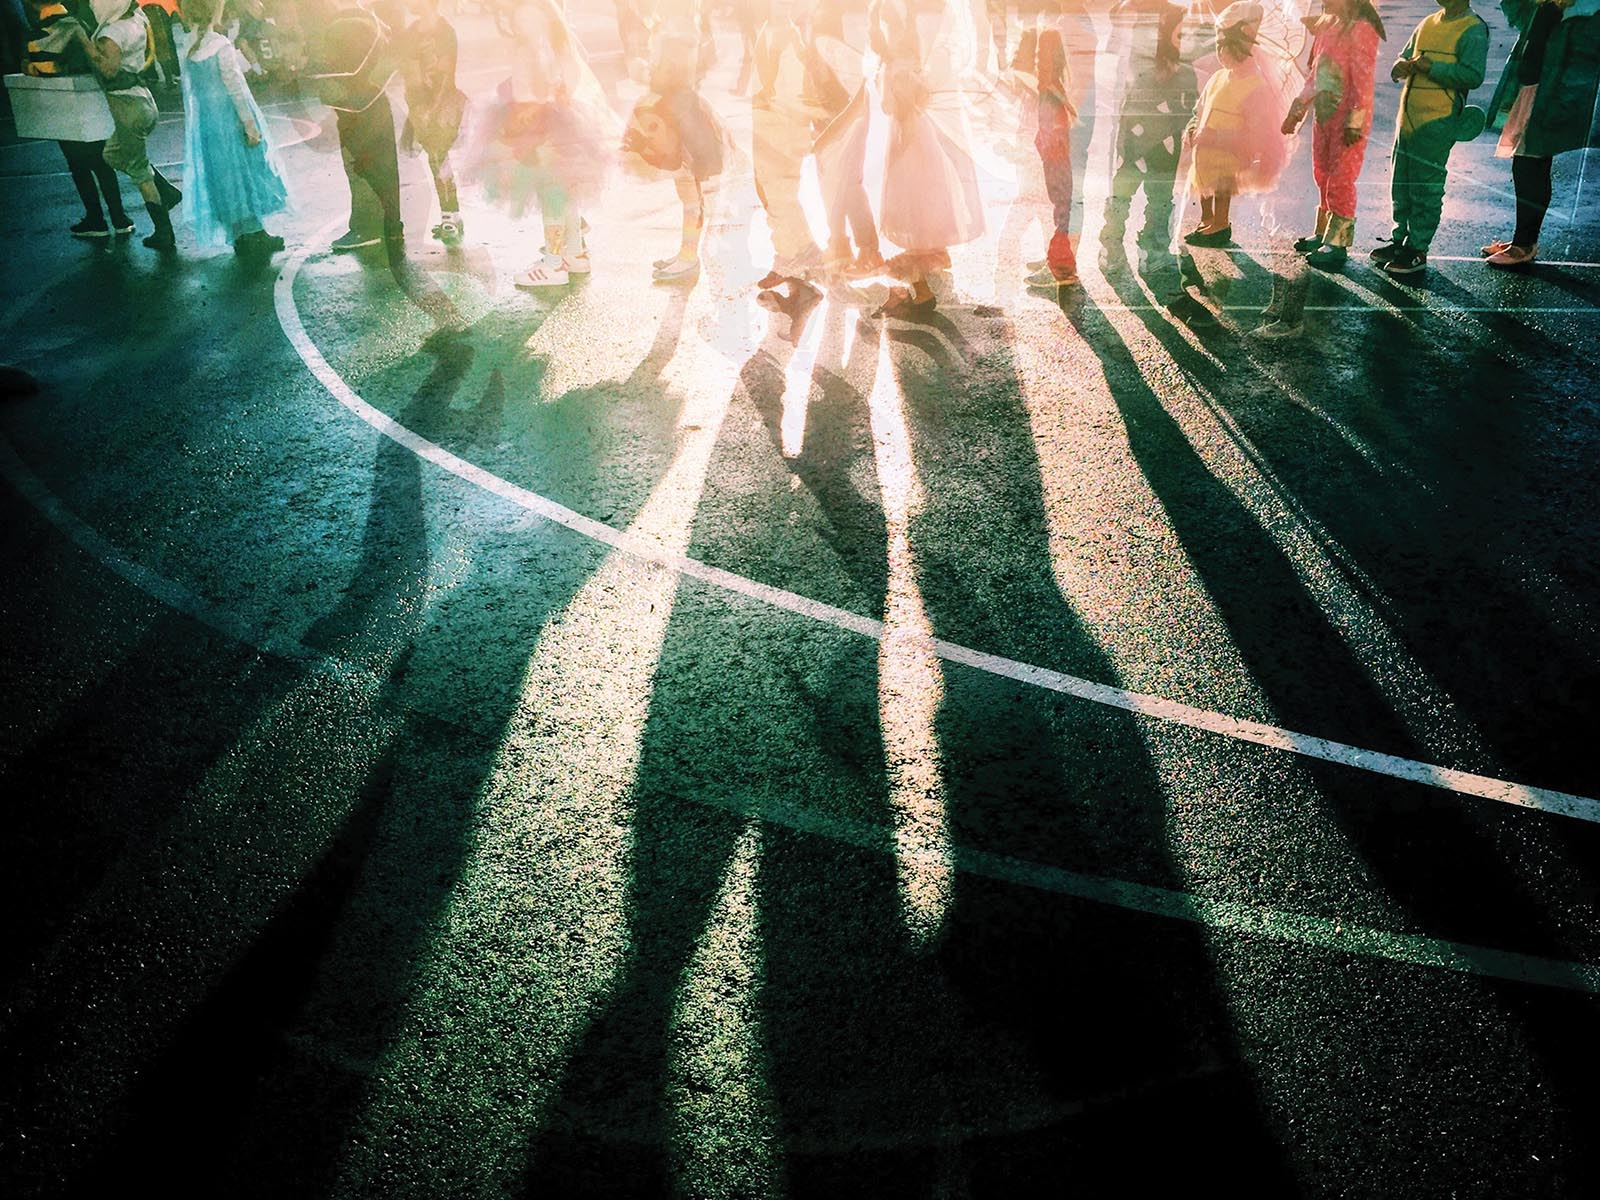 Creative photography of children and shadows